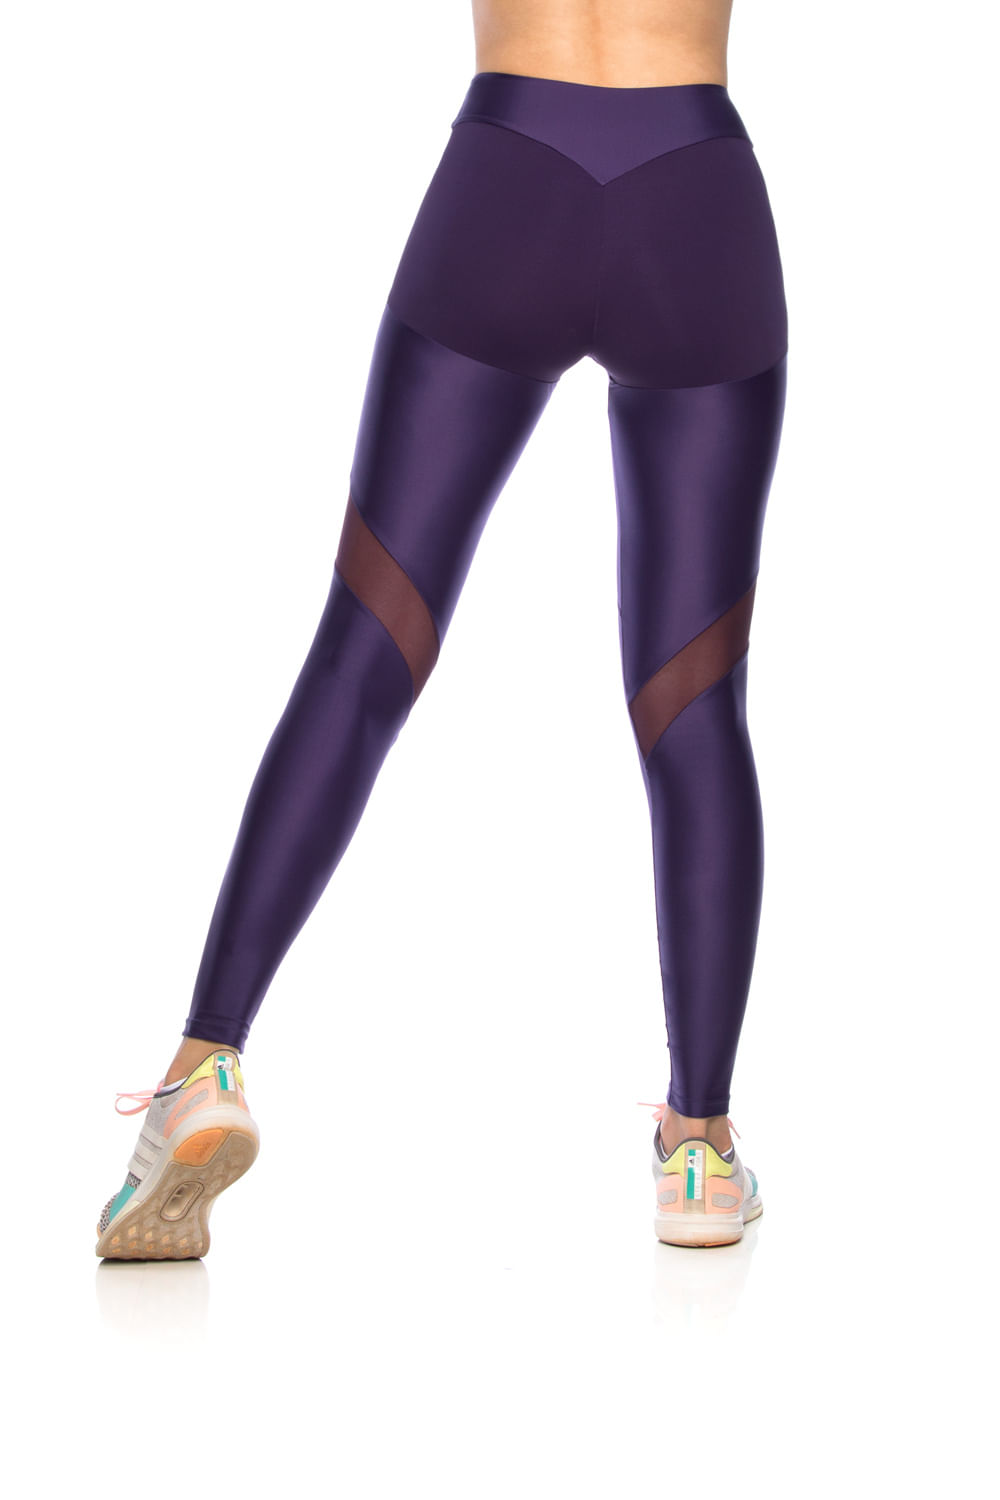 legging-fitness-power-micro-moda-academia-tule--6-